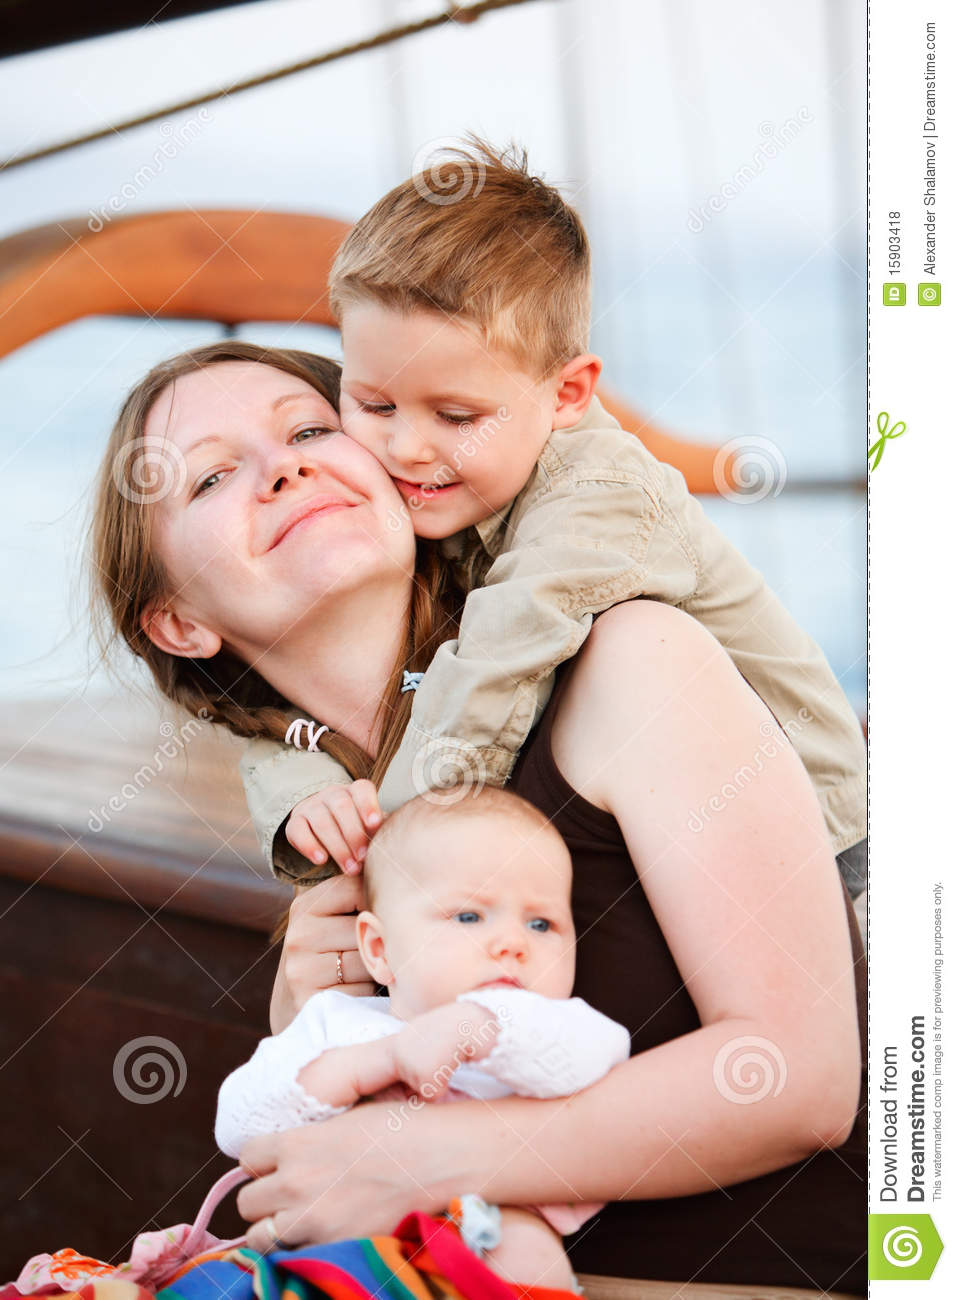 Mother and kids loving moment